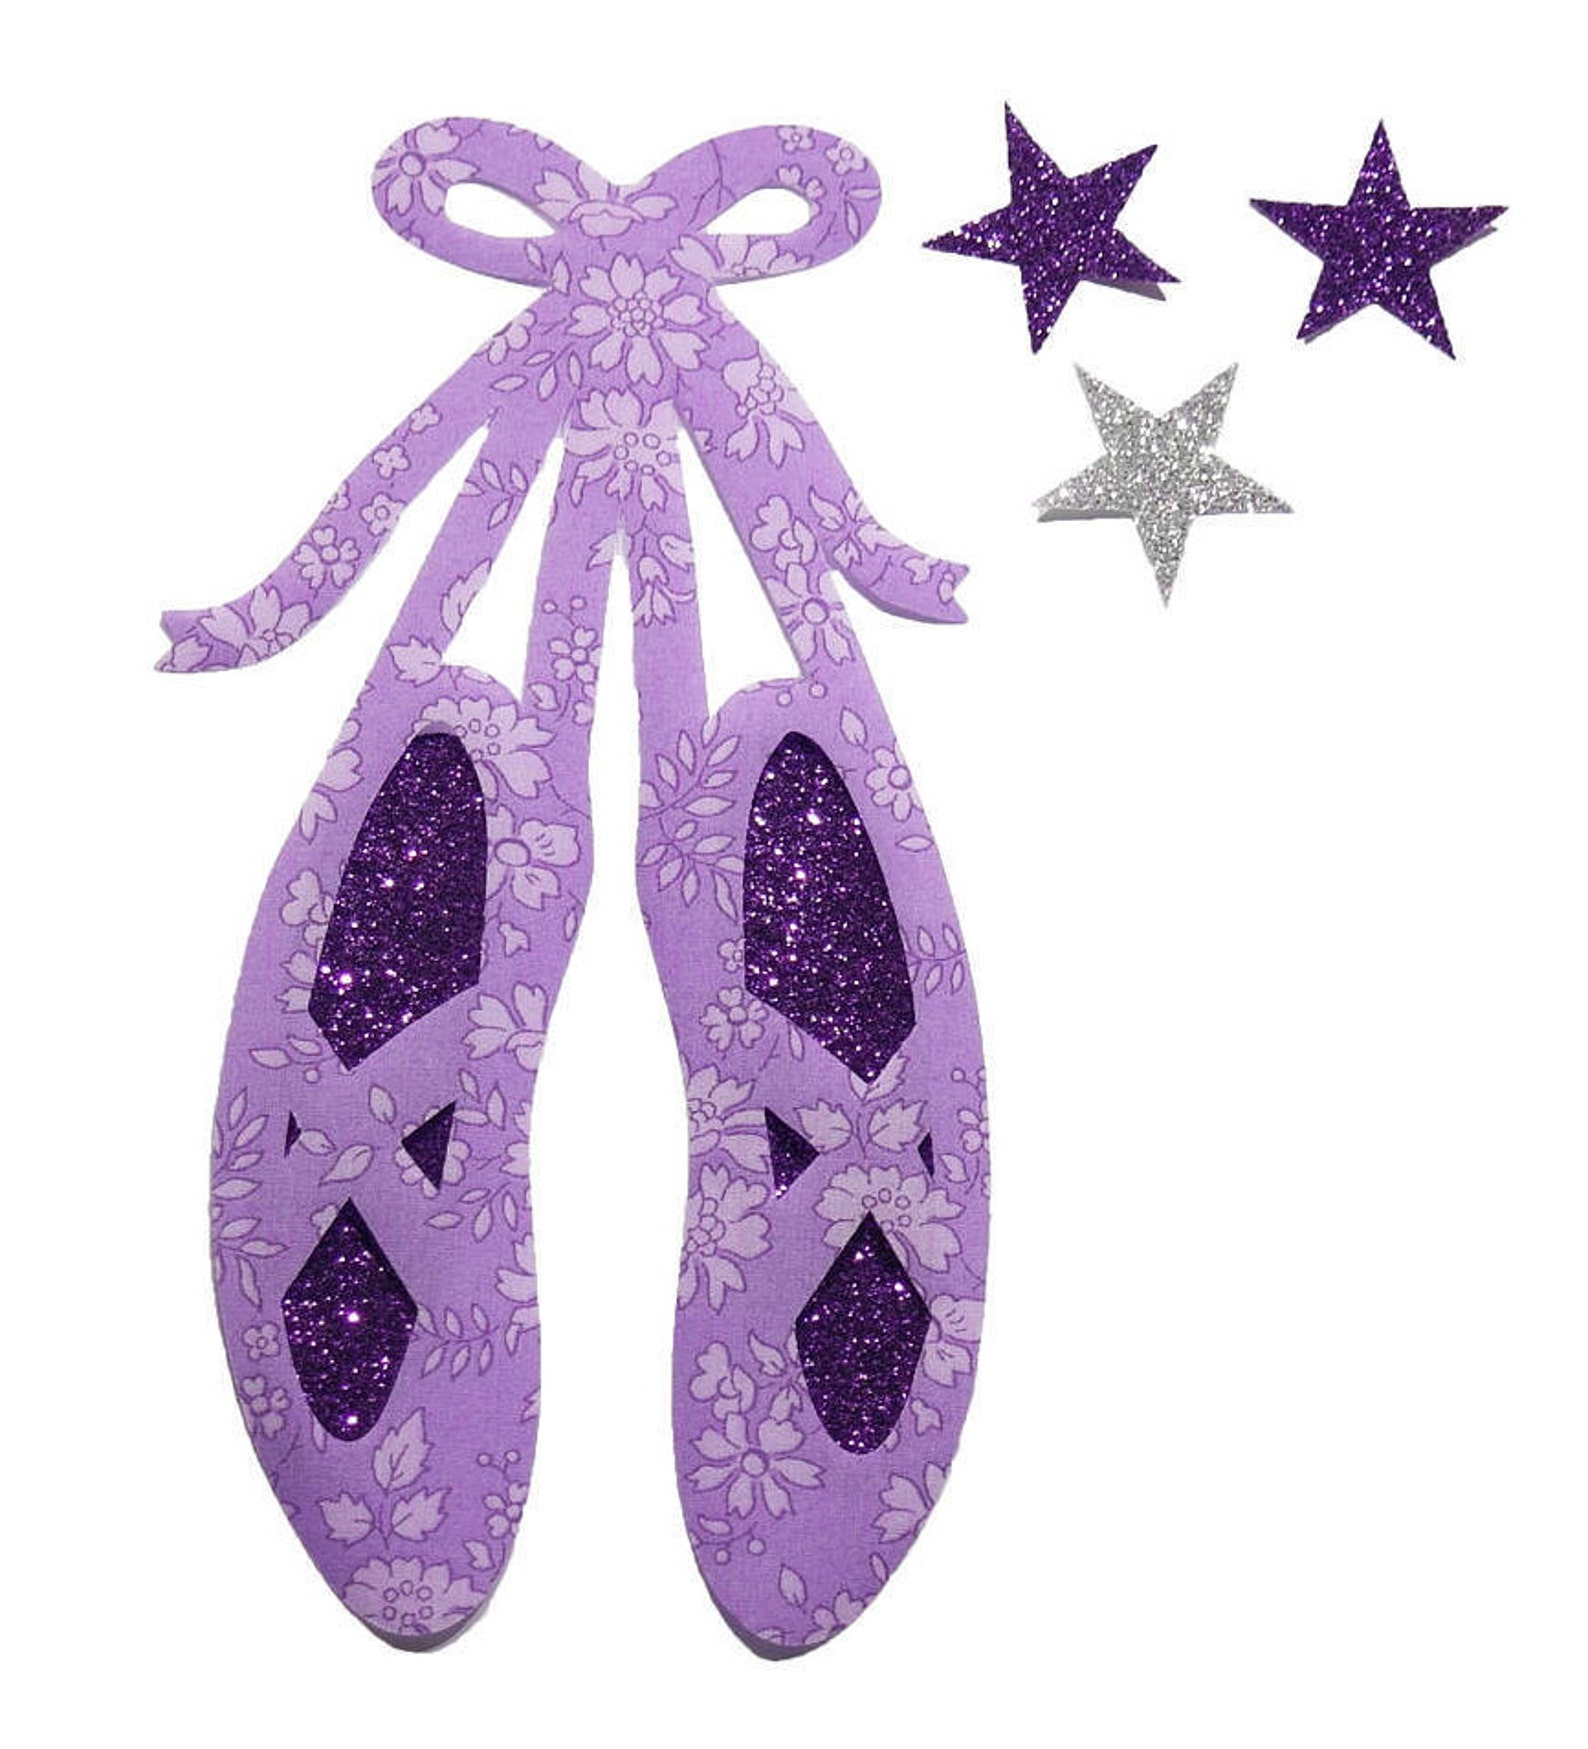 iron on applique liberty fabric ballet shoes liberty katie and milie with blush glittery fabric